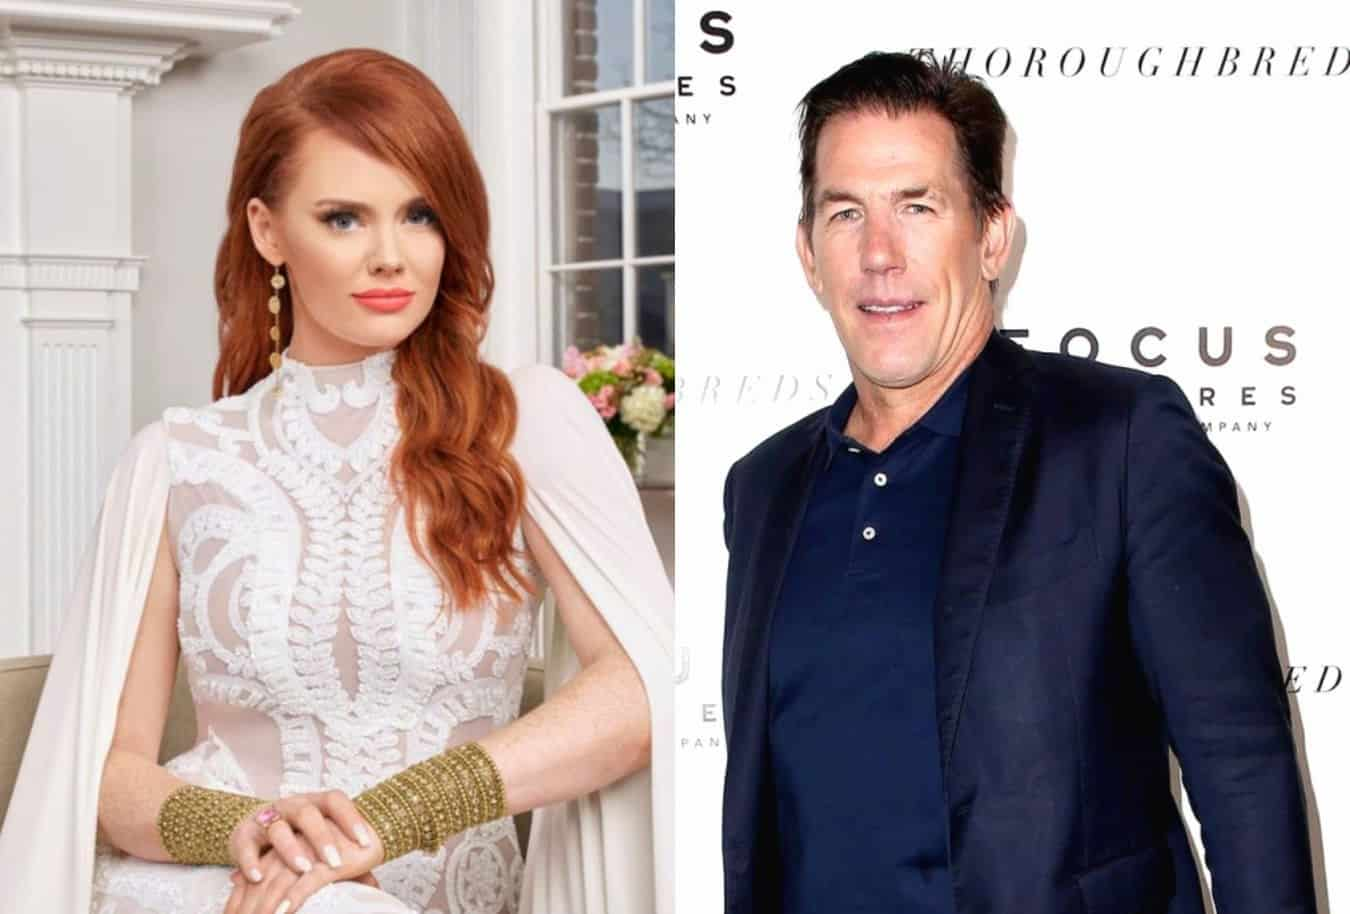 Southern Charm's Kathryn Dennis Sets the Record Straight on Relationship Status with Thomas Ravenel as Sources Claim They are Exploring a New Spark With One Another